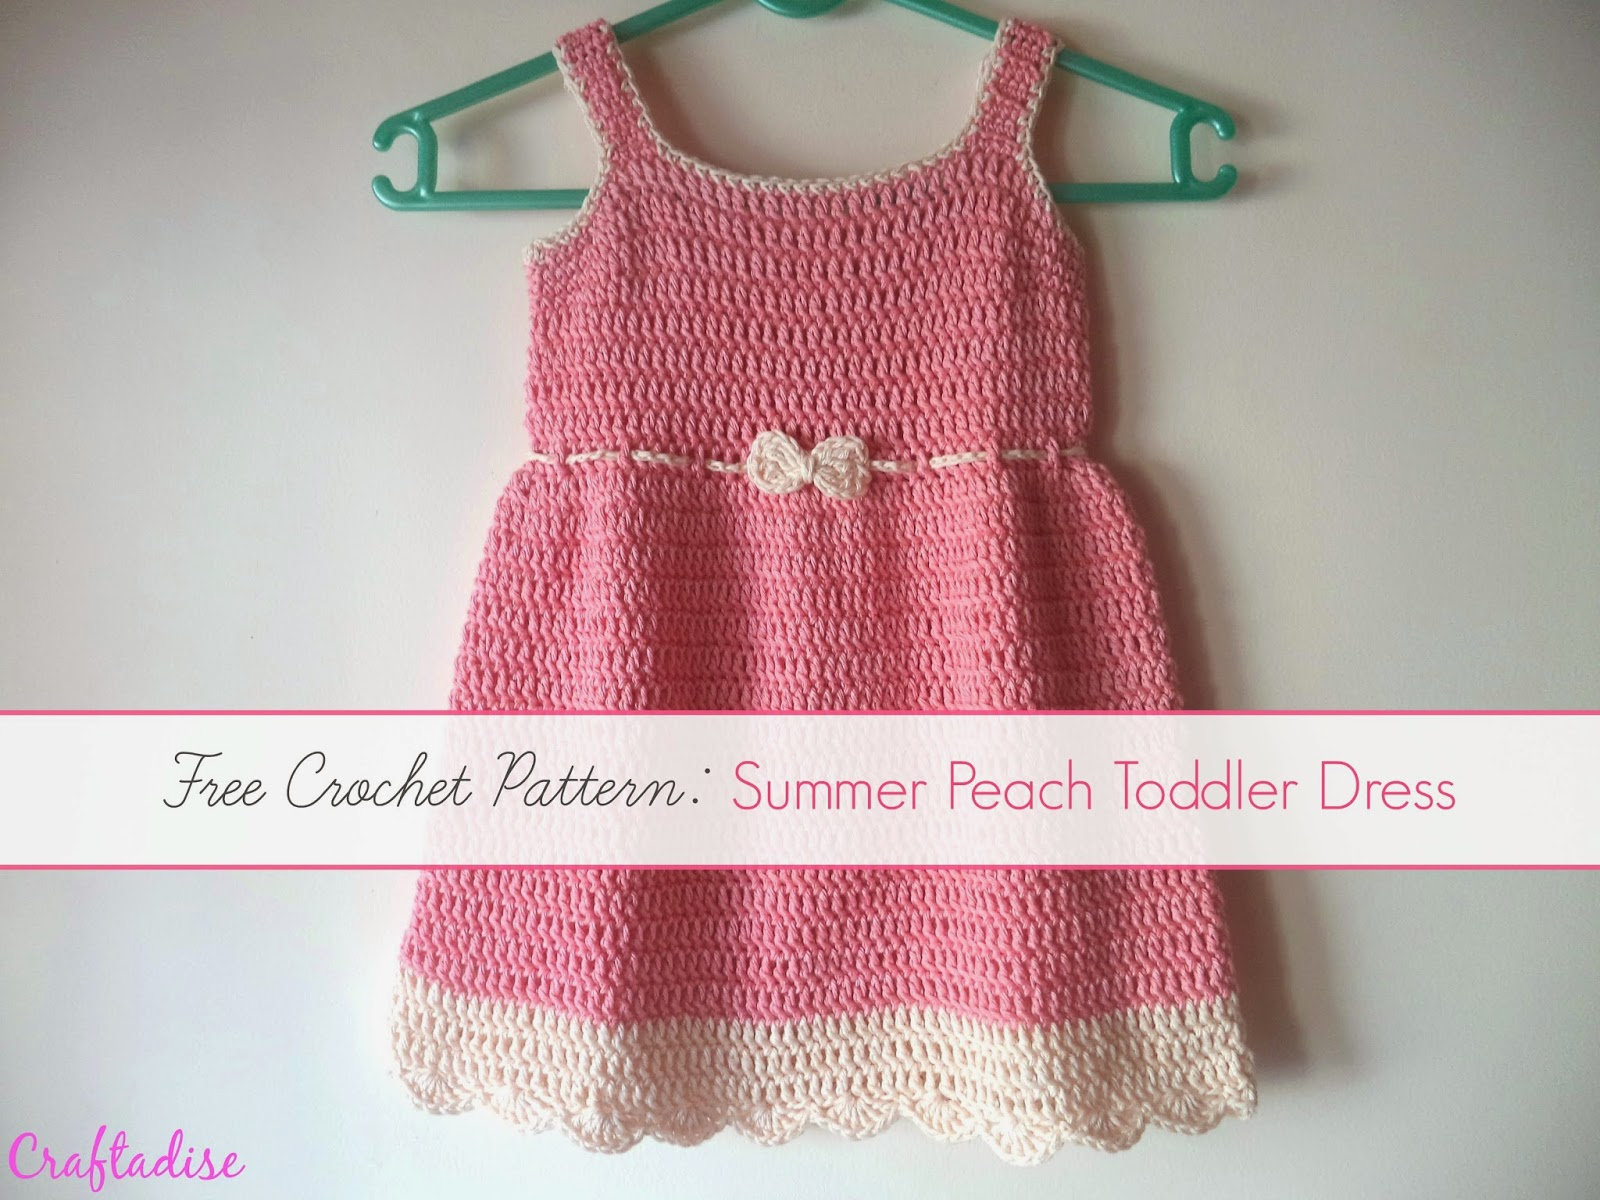 Free Crochet Pattern: Crochet Summer Peach Toddler Dress